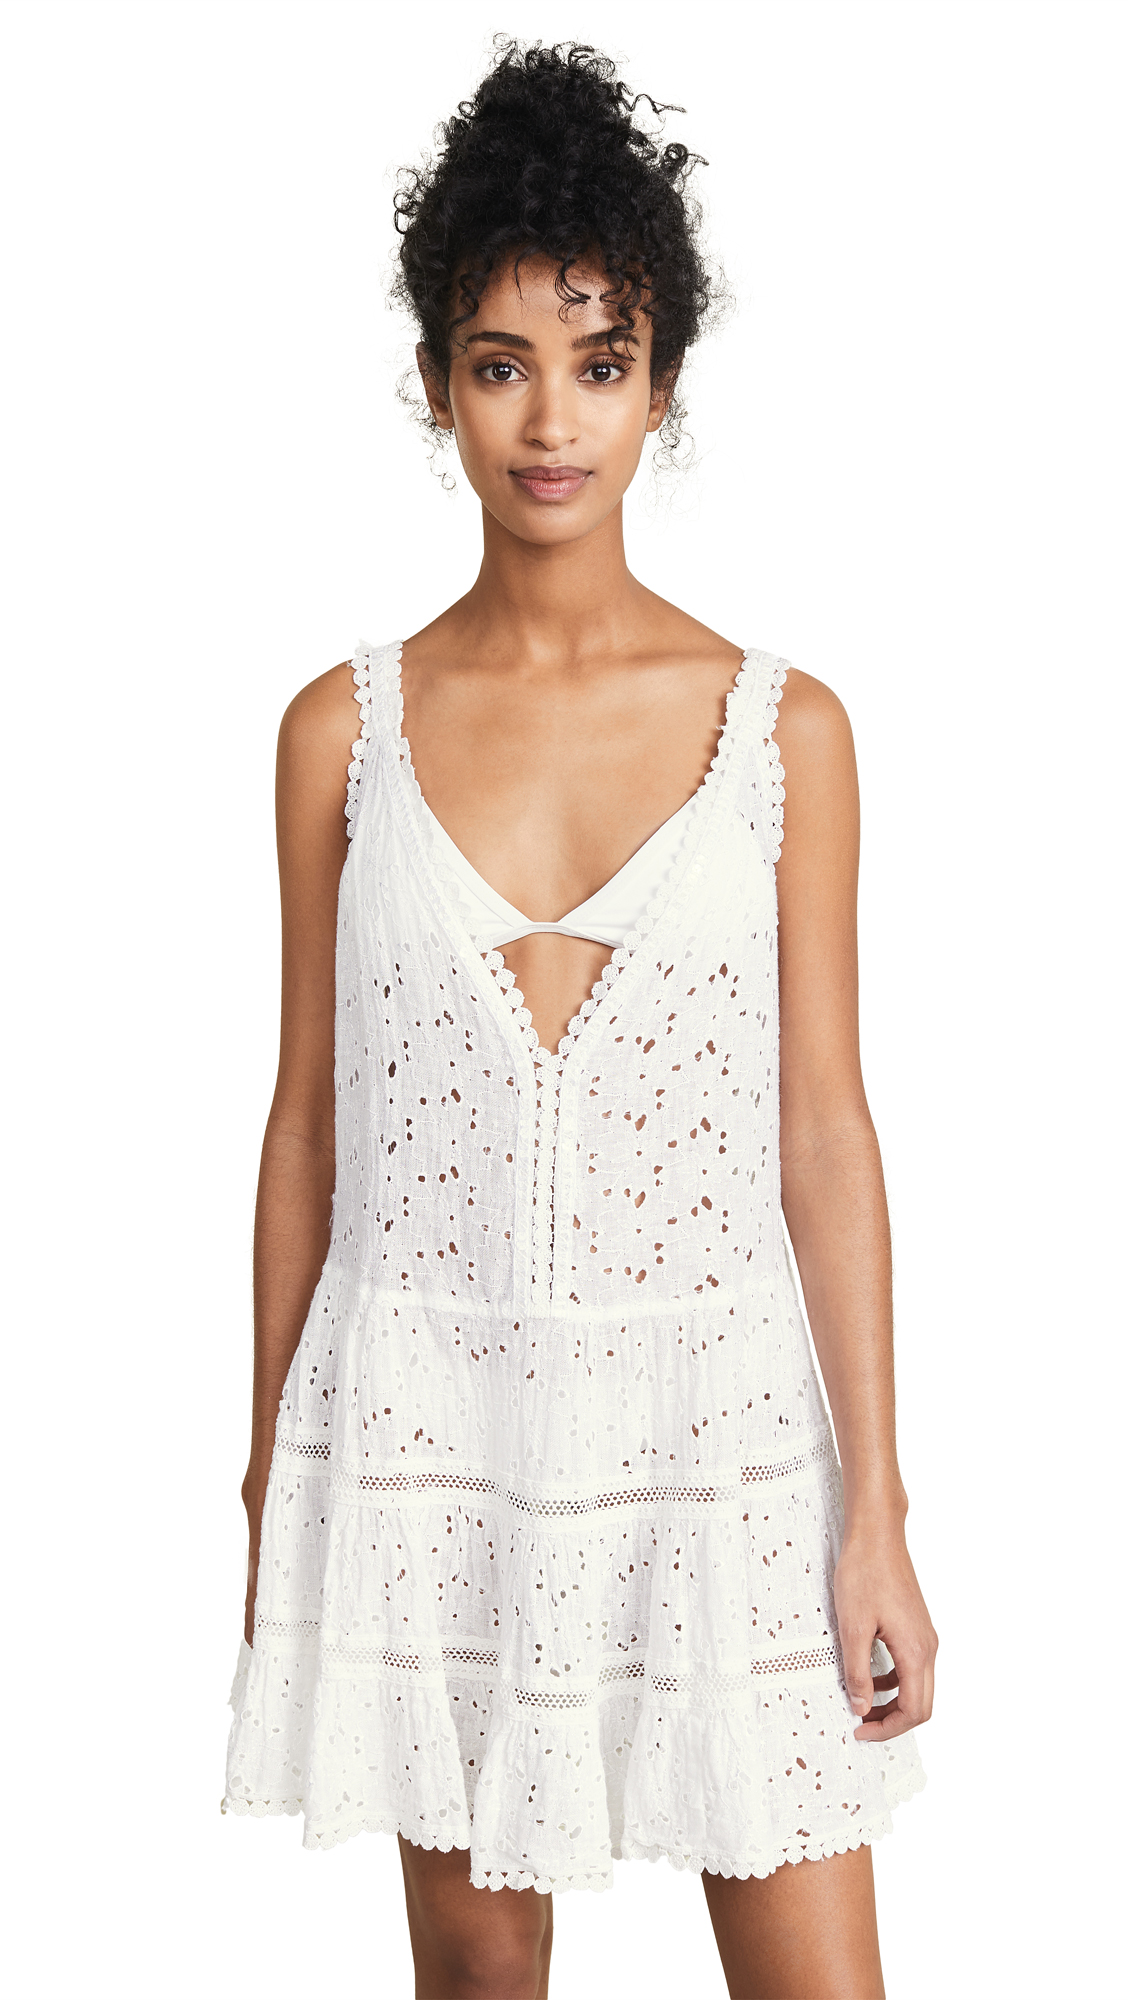 SUNDAY SAINT TROPEZ Marilyn Dress in White